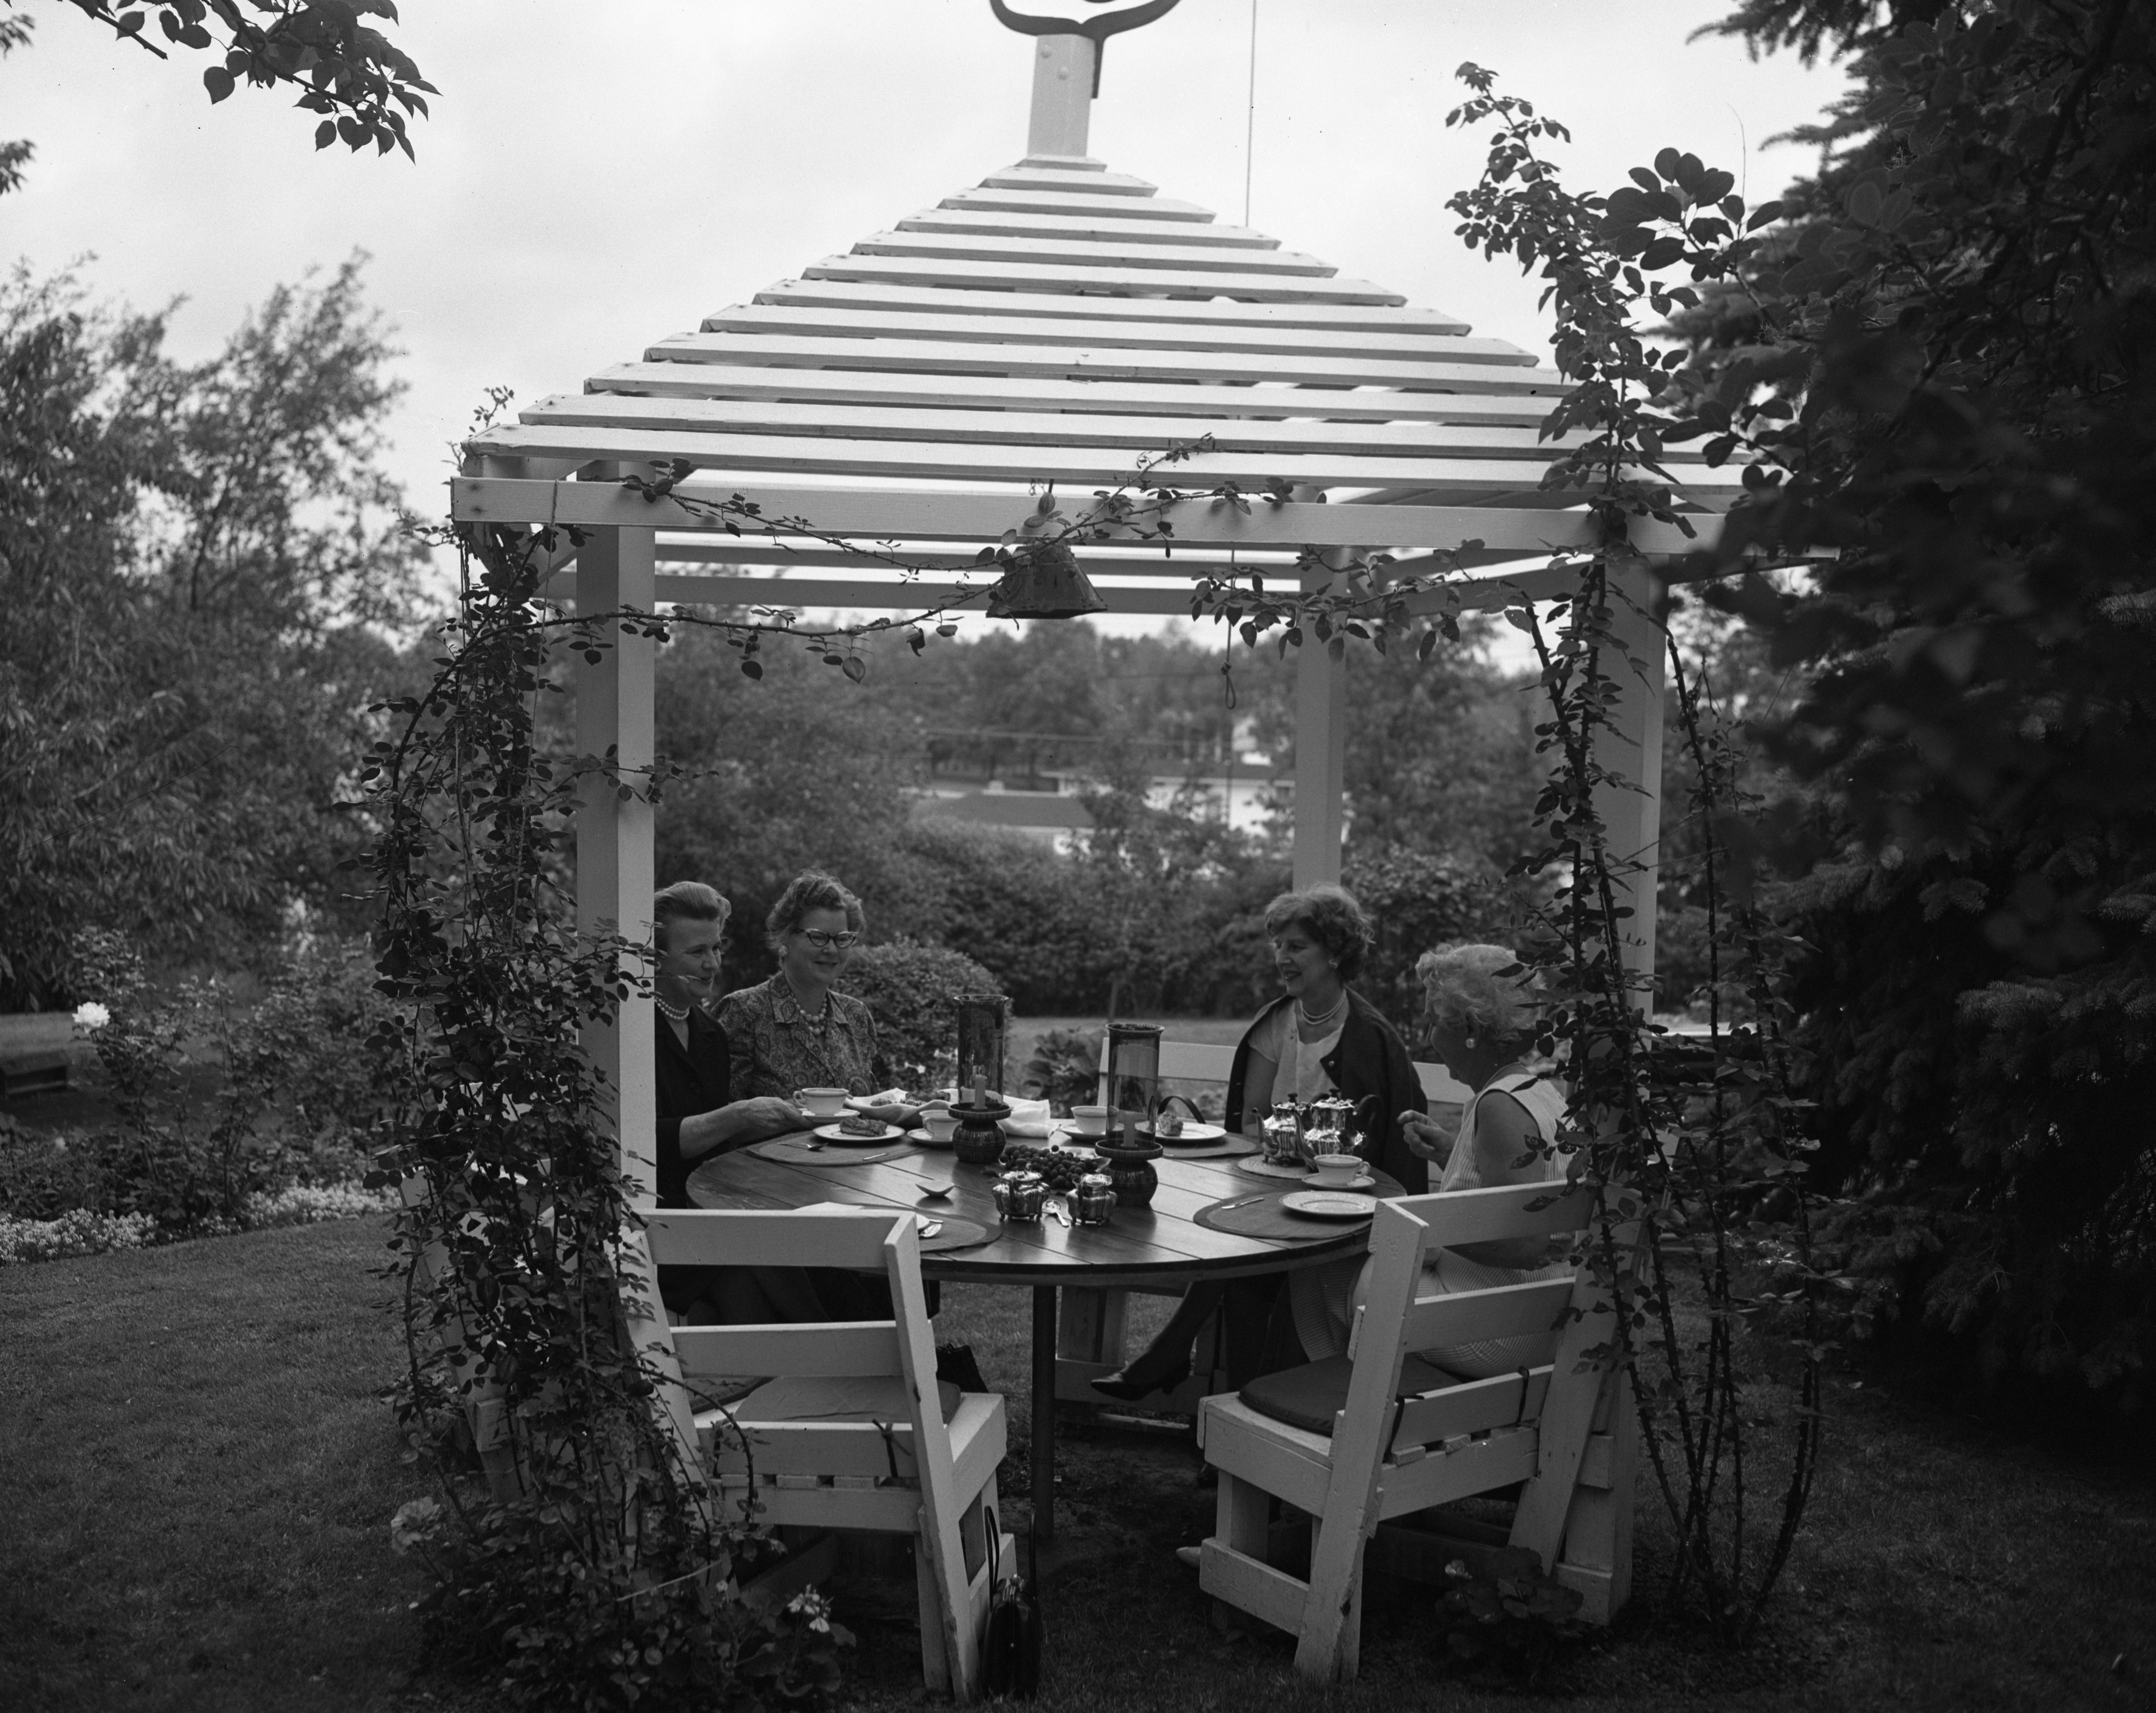 Afternoons Are Pleasant In the James Englands' Gazebo, September 1963 image